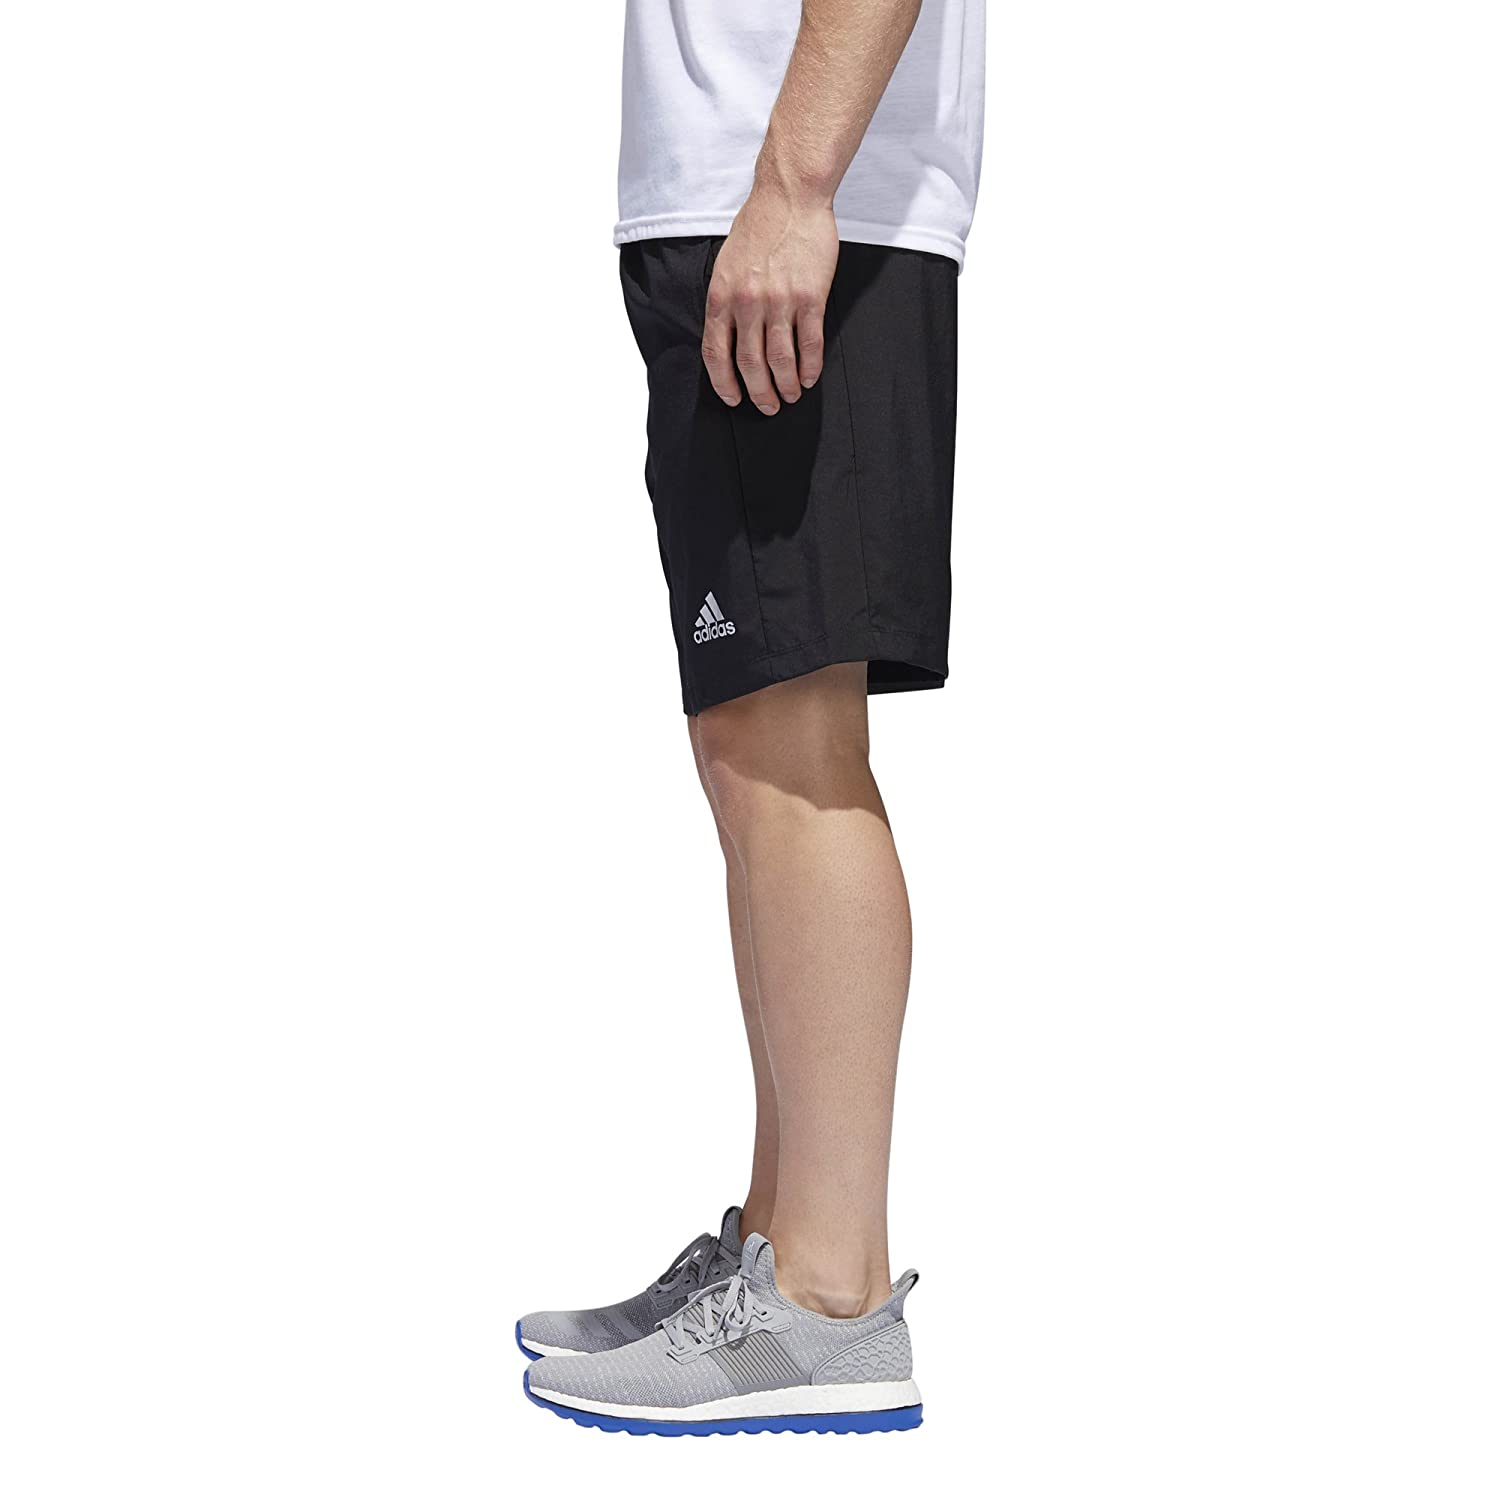 new appearance good reasonable price adidas Men's Training Designed-2-Move 3 Stripes Short